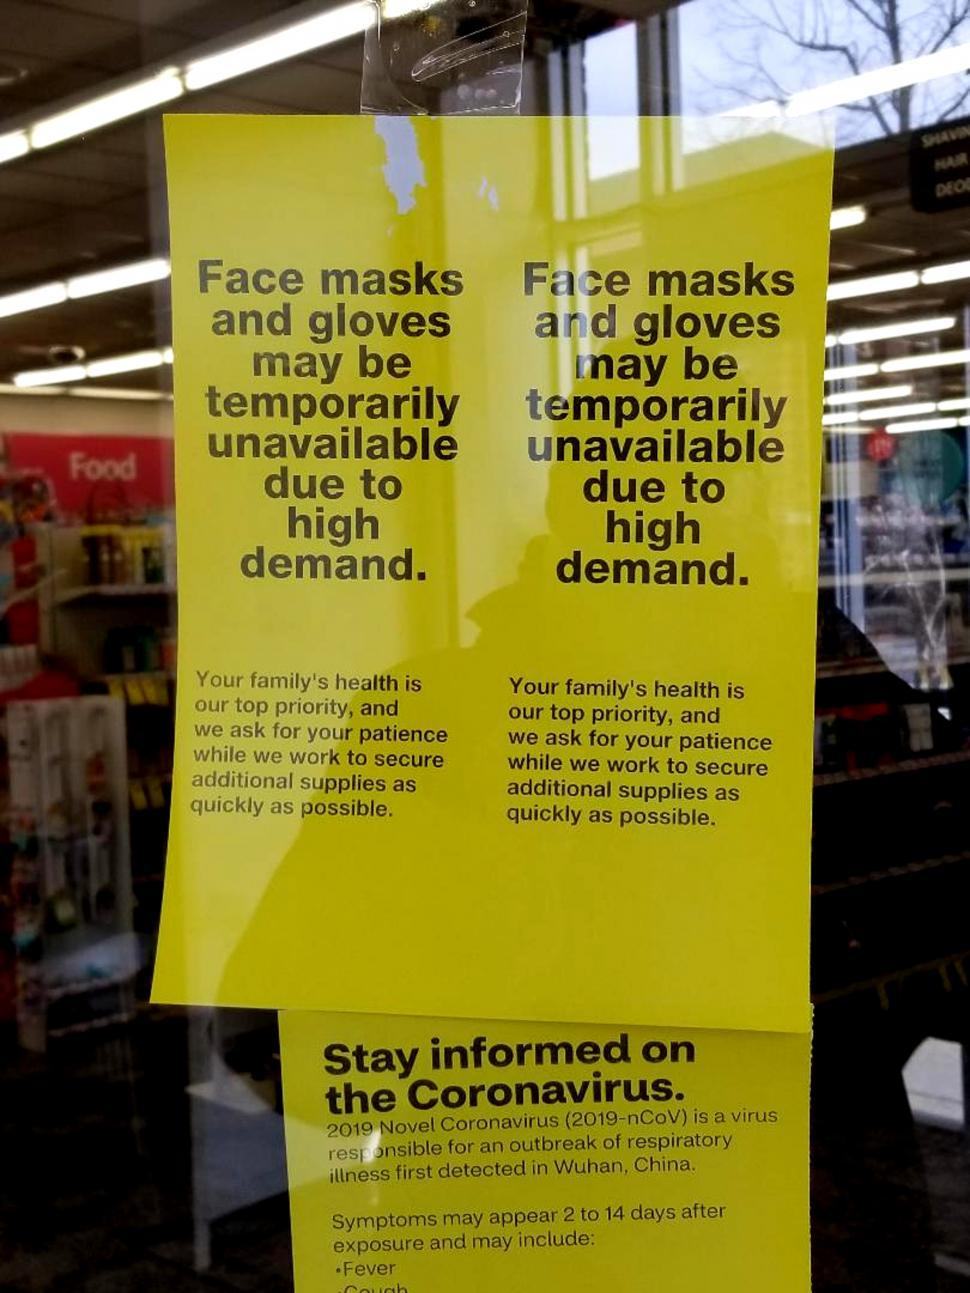 Facemasks and gloves unavailable